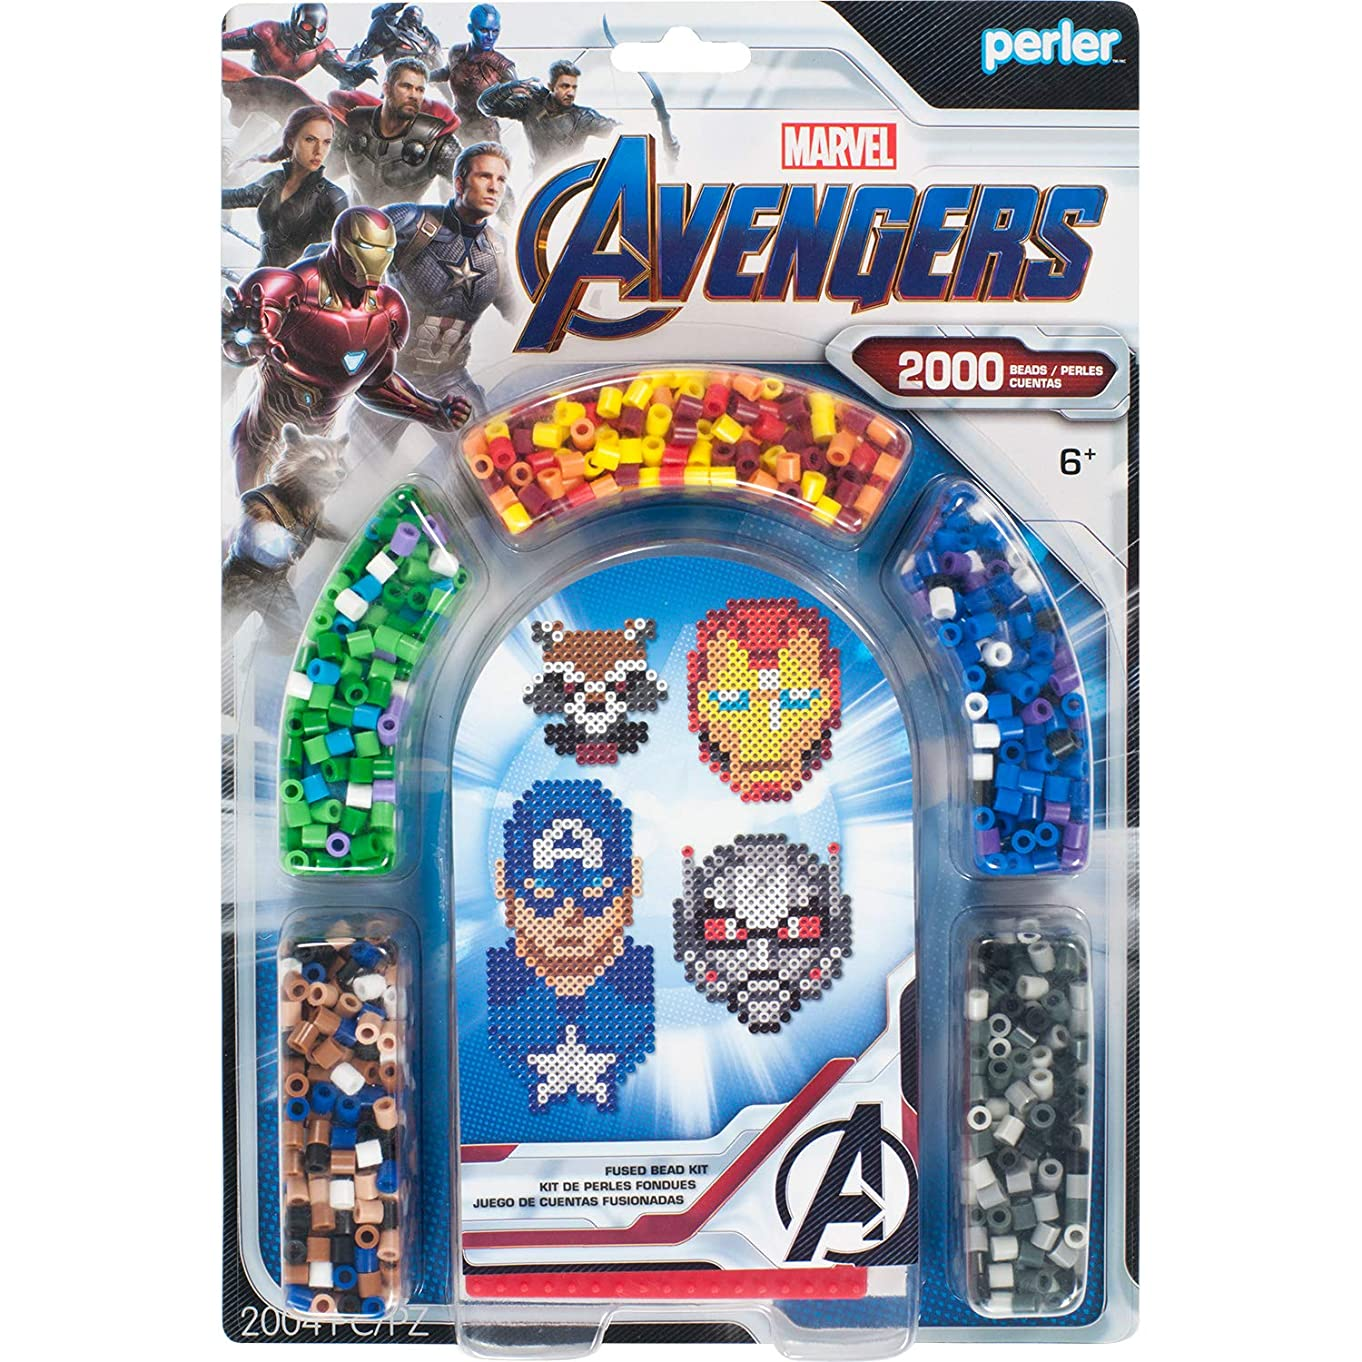 Perler PER8063070 Marvel Avengers Fuse Bead Kit, 2004pc, 4 Patterns, Multicolor